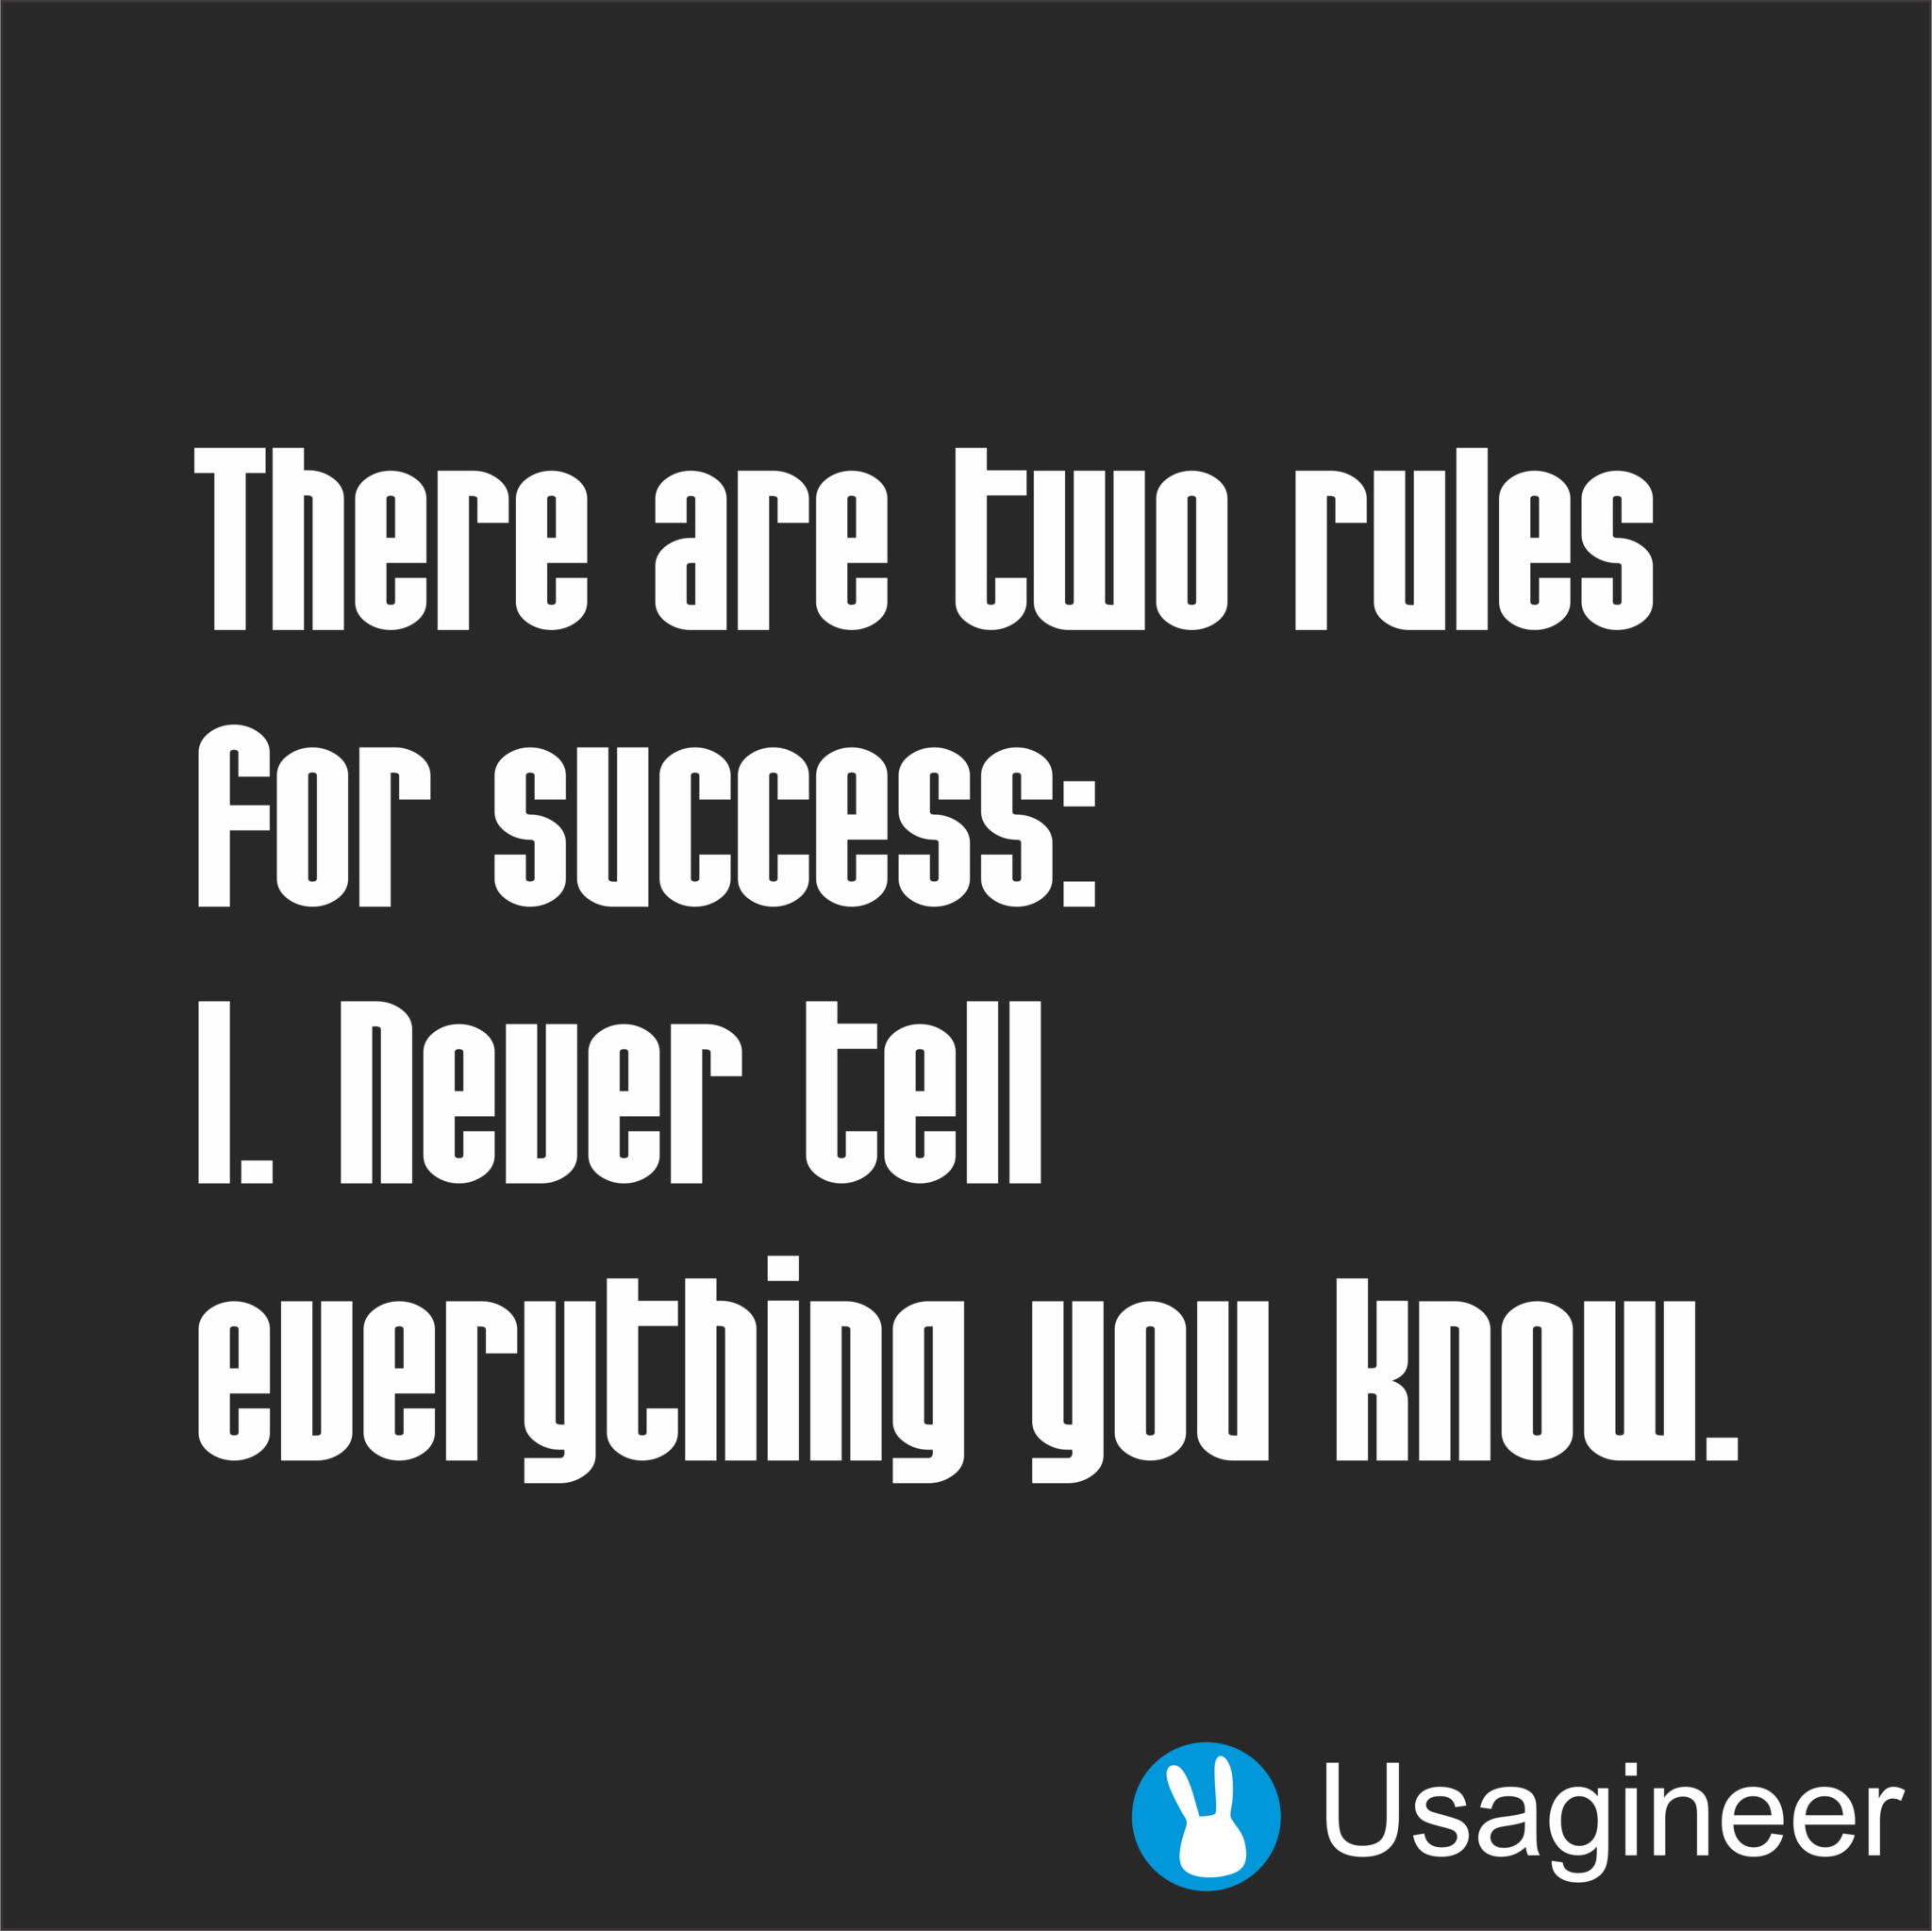 THERE ARE TWO RULES FOR SUCCESS  NEVER TELL EVERYTHING YOU KNOW - Custom vinyl decals quotes   beginning business